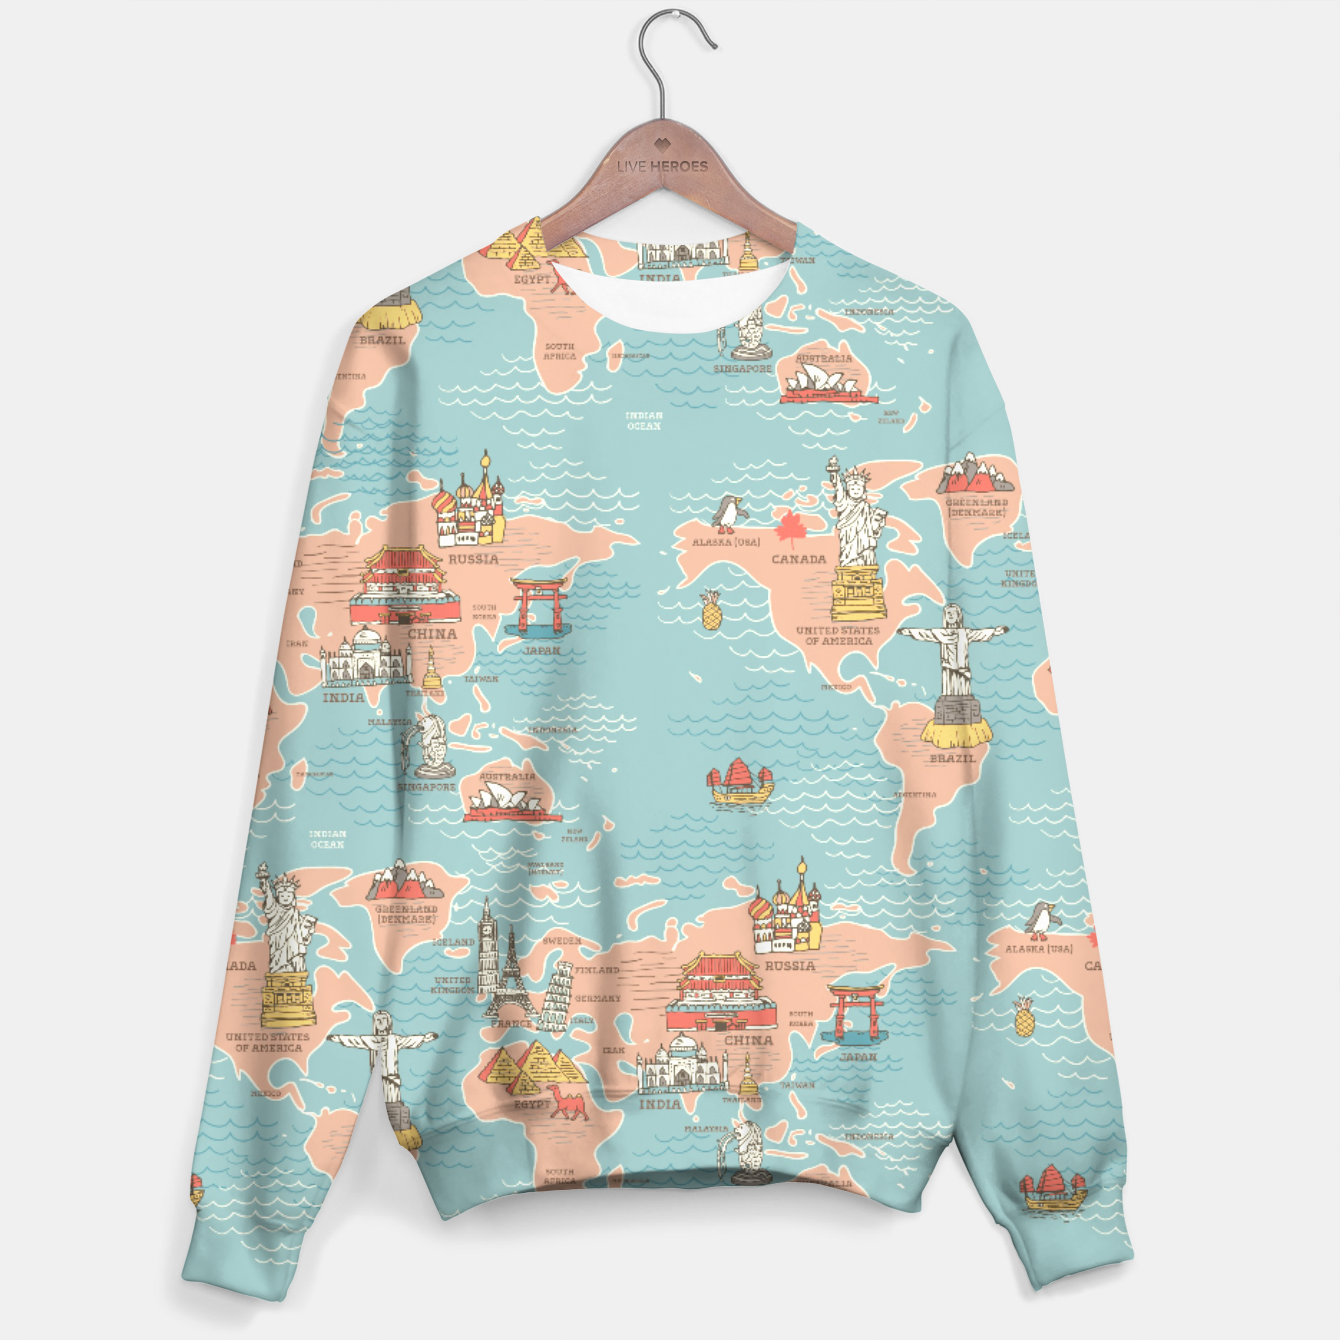 World Map Sweater.World Map Cartoon Style Sweater Live Heroes